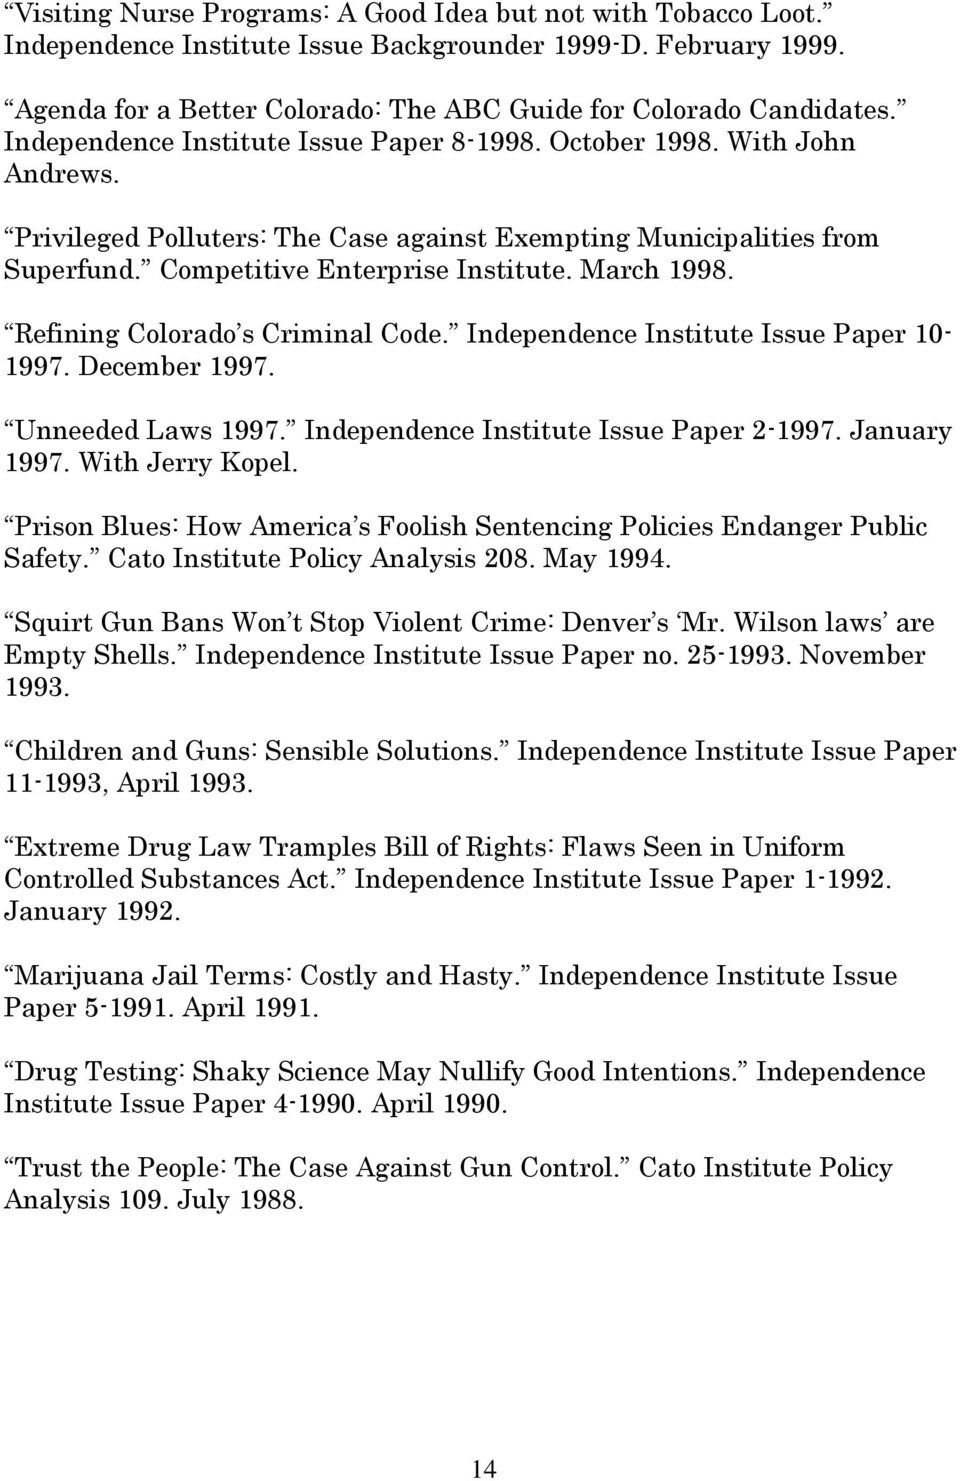 March 1998. Refining Colorado s Criminal Code. Independence Institute Issue Paper 10-1997. December 1997. Unneeded Laws 1997. Independence Institute Issue Paper 2-1997. January 1997. With Jerry Kopel.